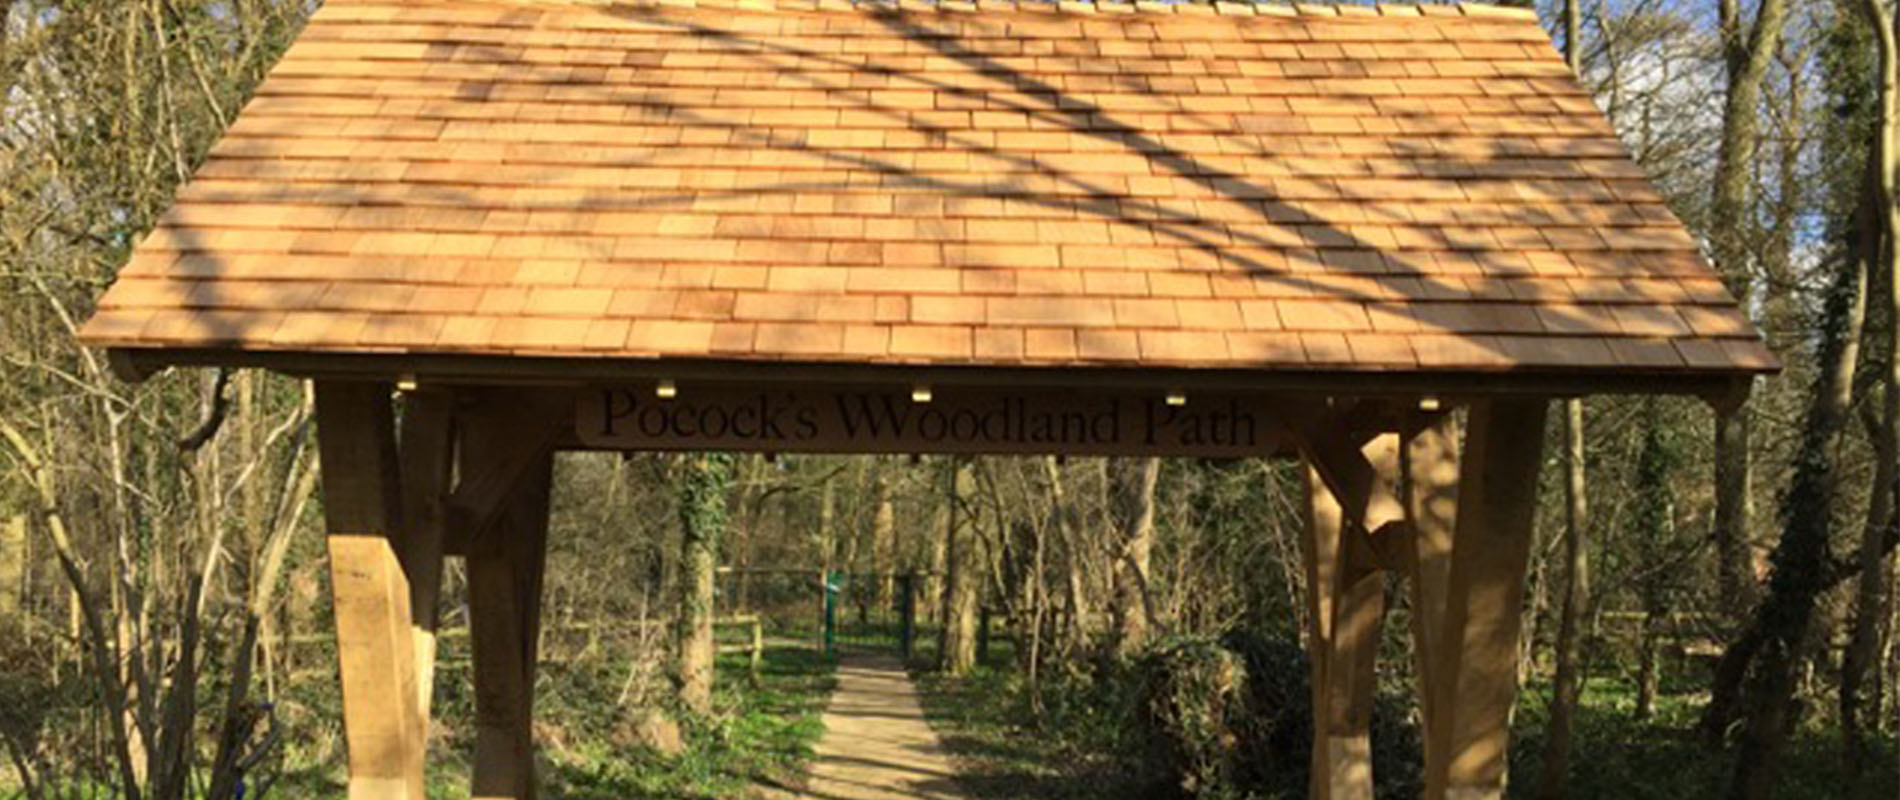 Cedar Shingles Are a Natural Choice for Woodland Walkway